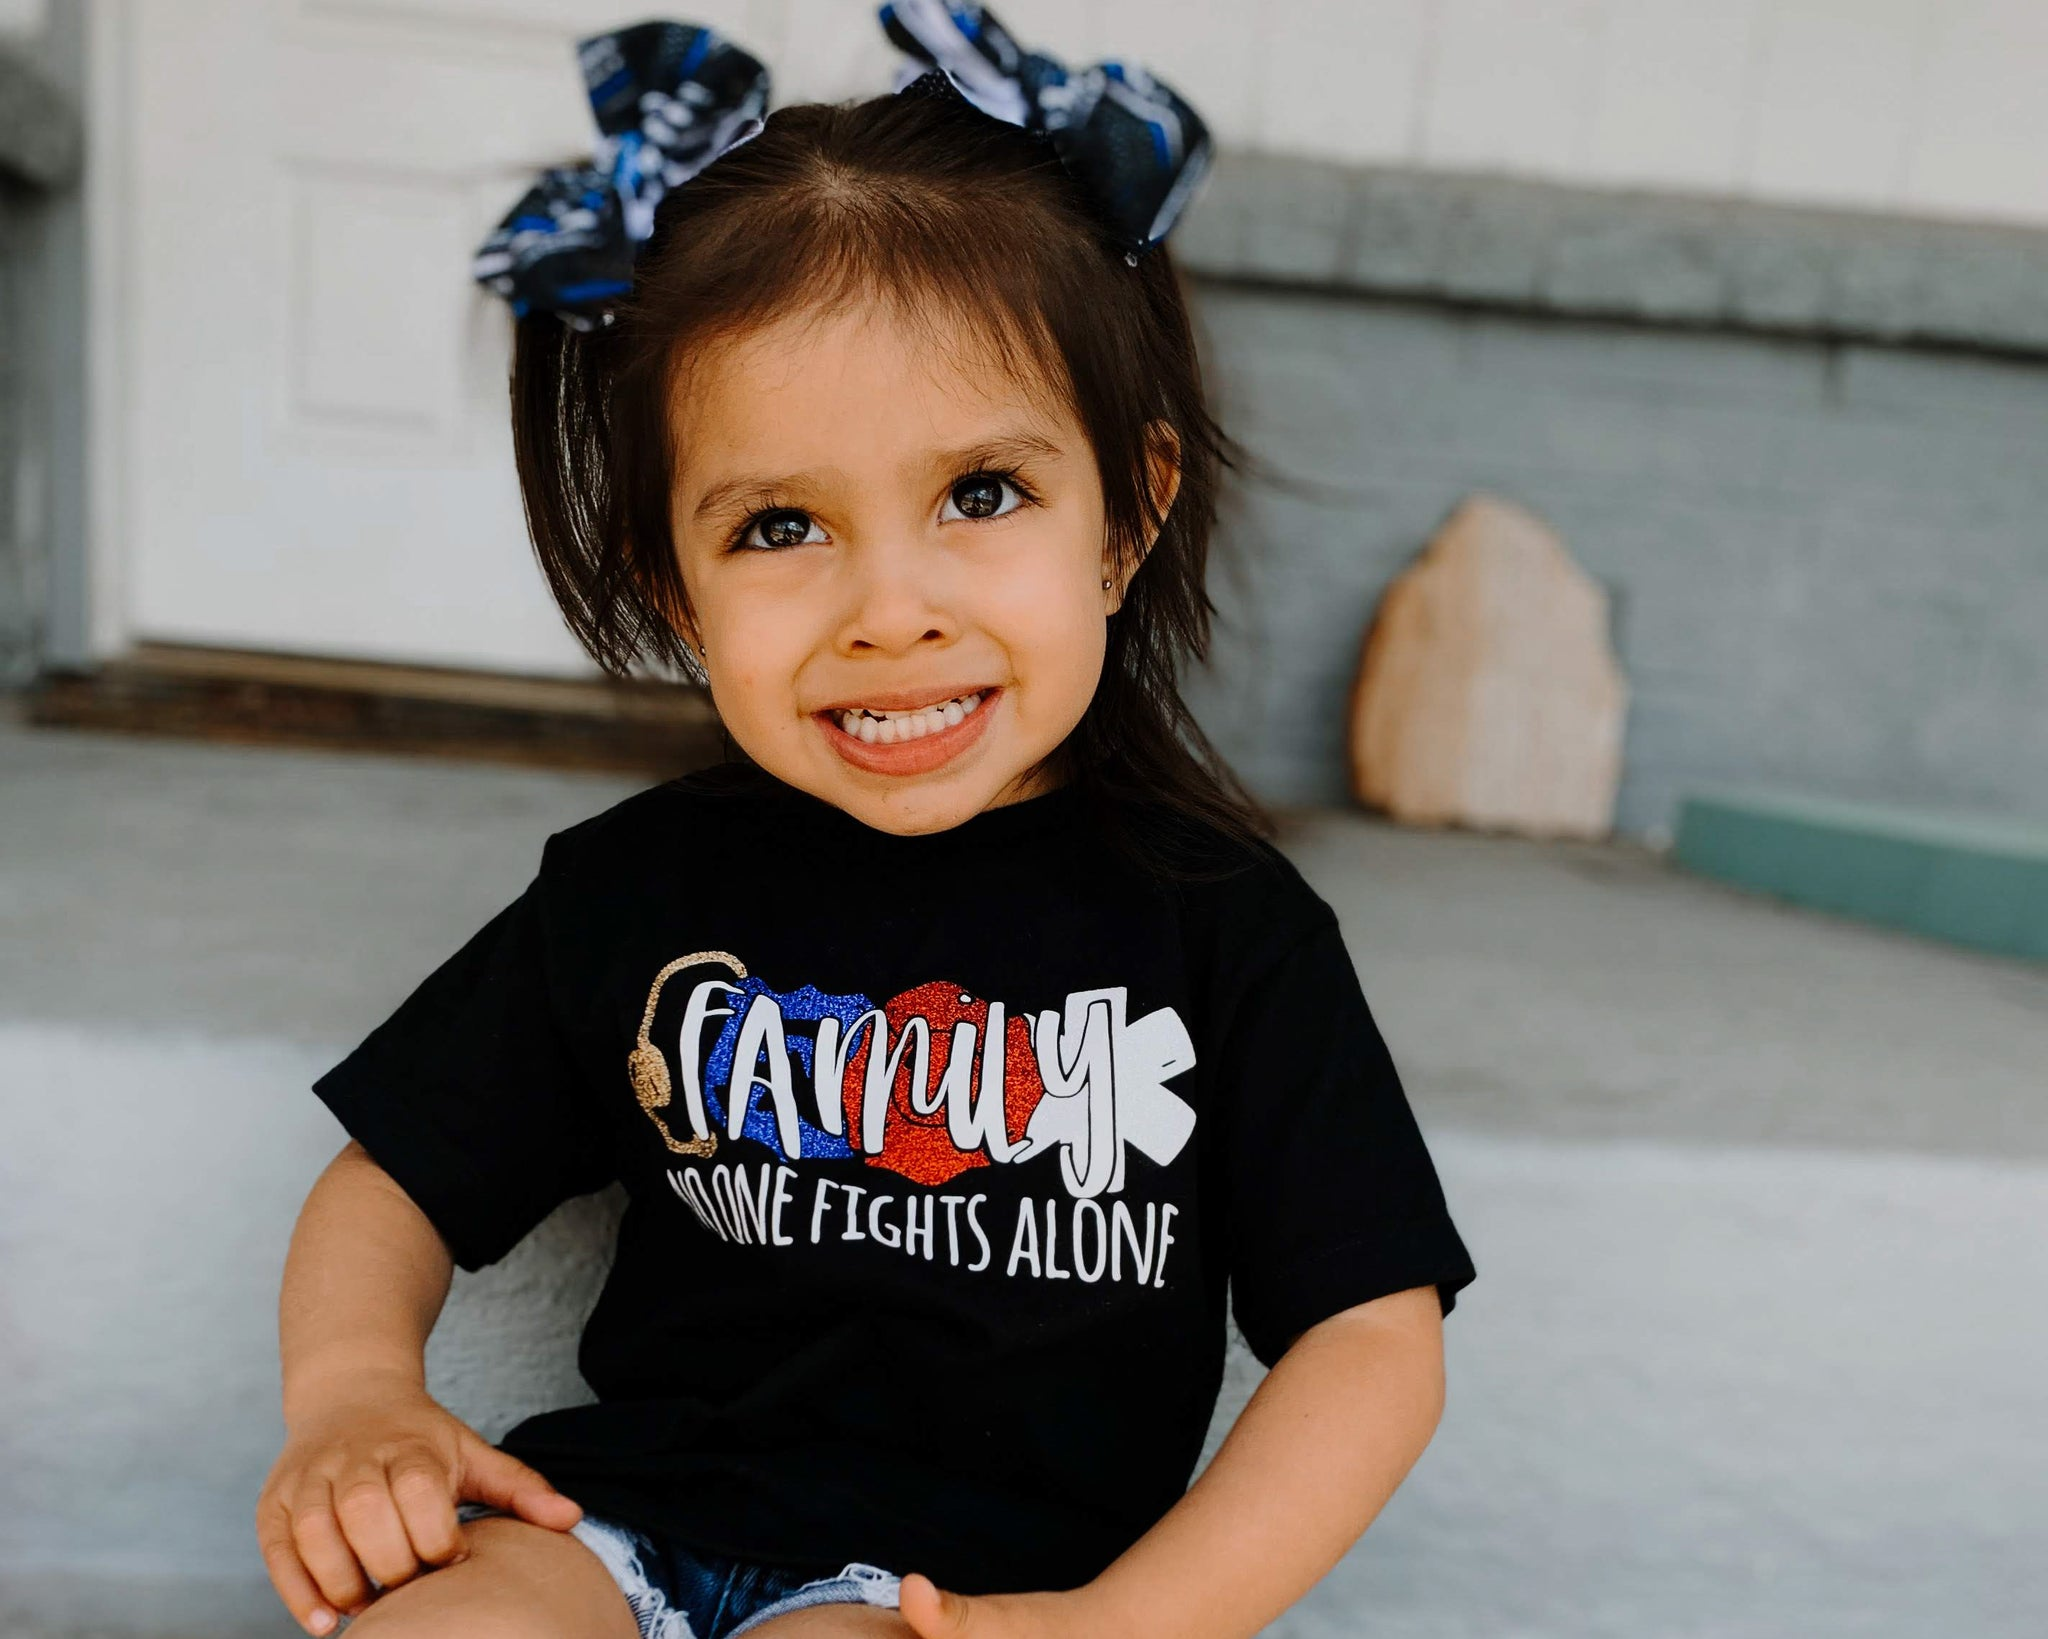 FAMILY No One Fights Alone © - Toddler/Youth T-Shirt